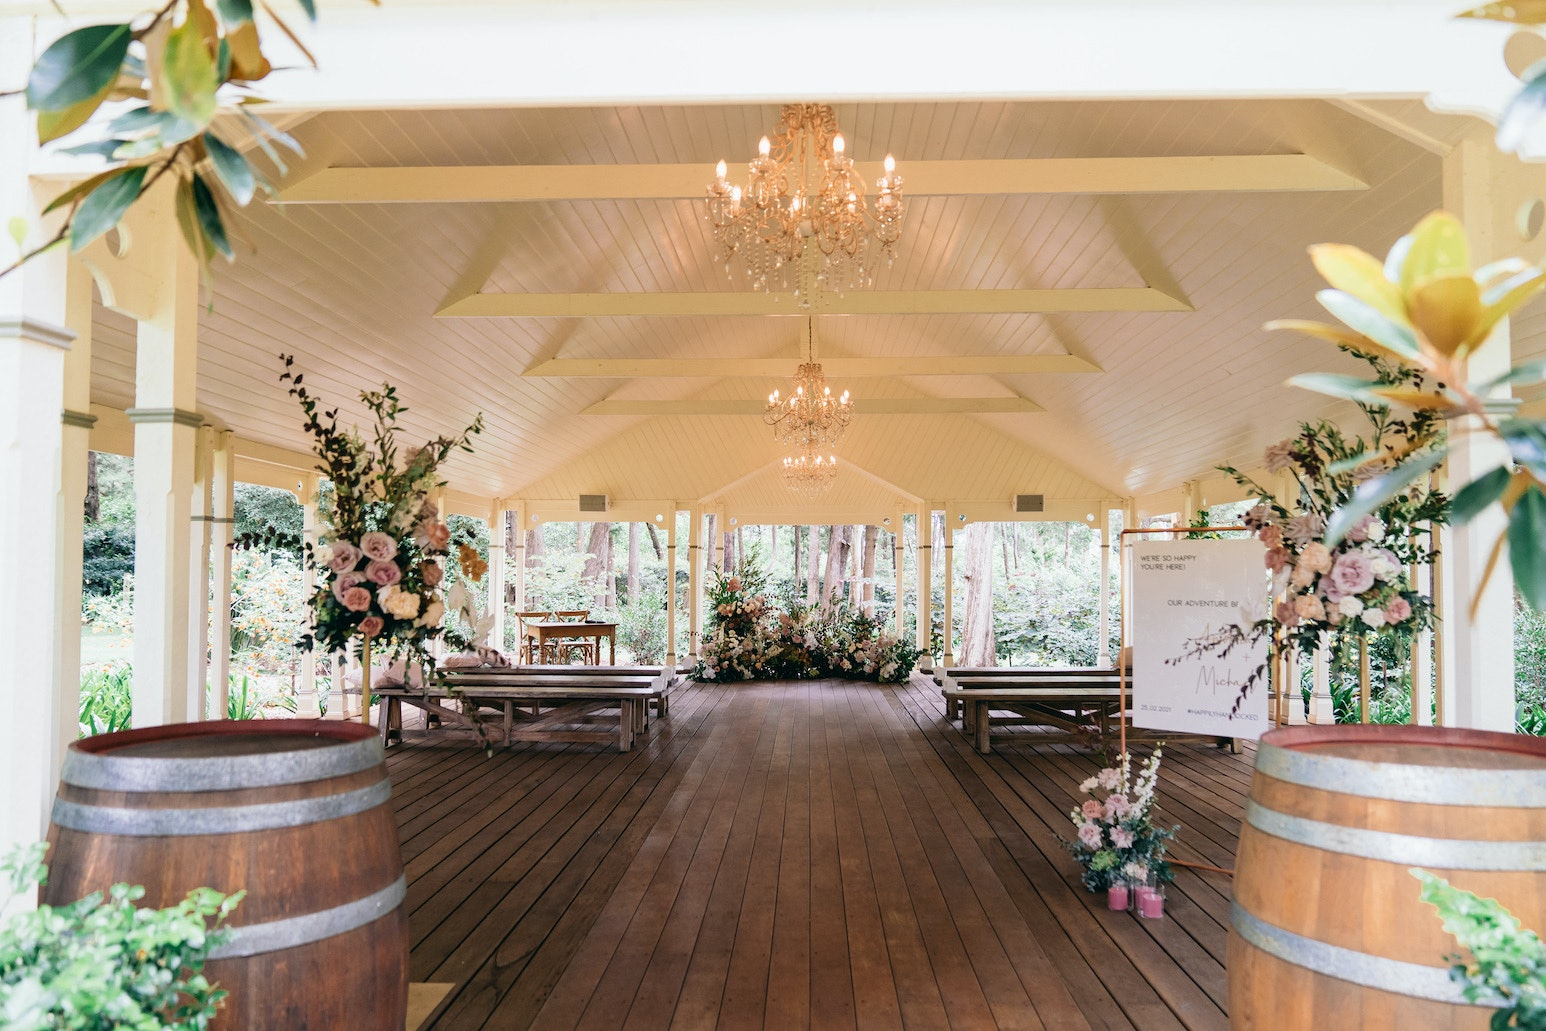 Wedding ceremony with flowers and bench seats